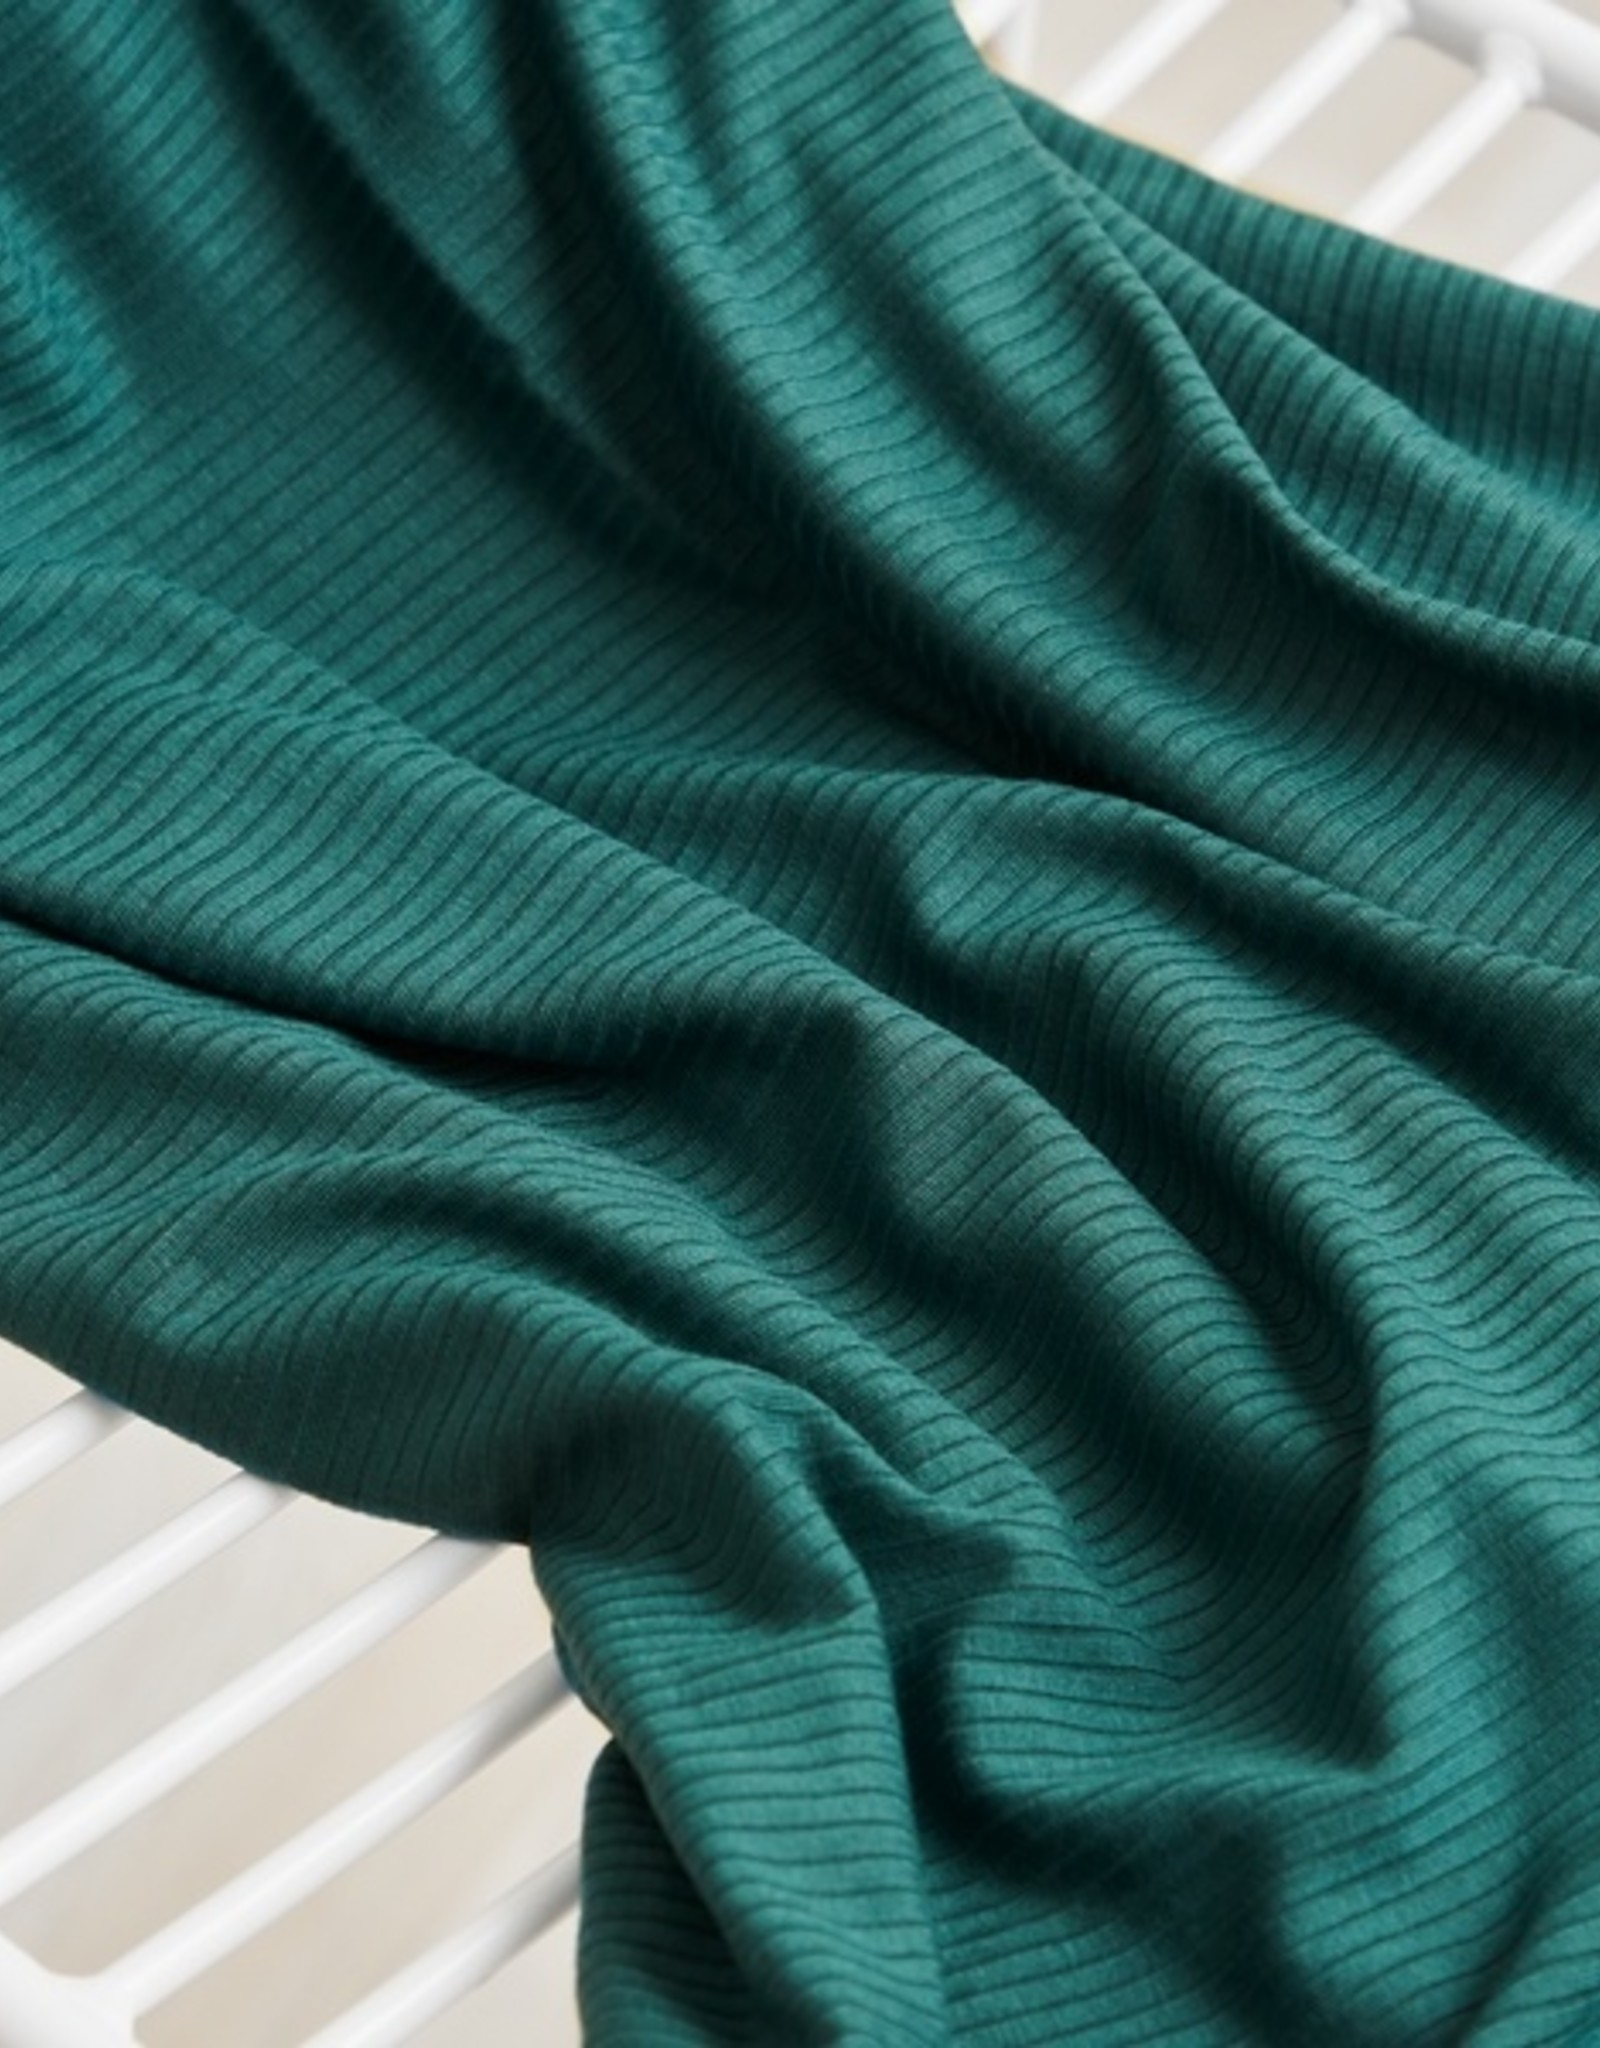 Meet Milk Derby ribbed jersey emerald